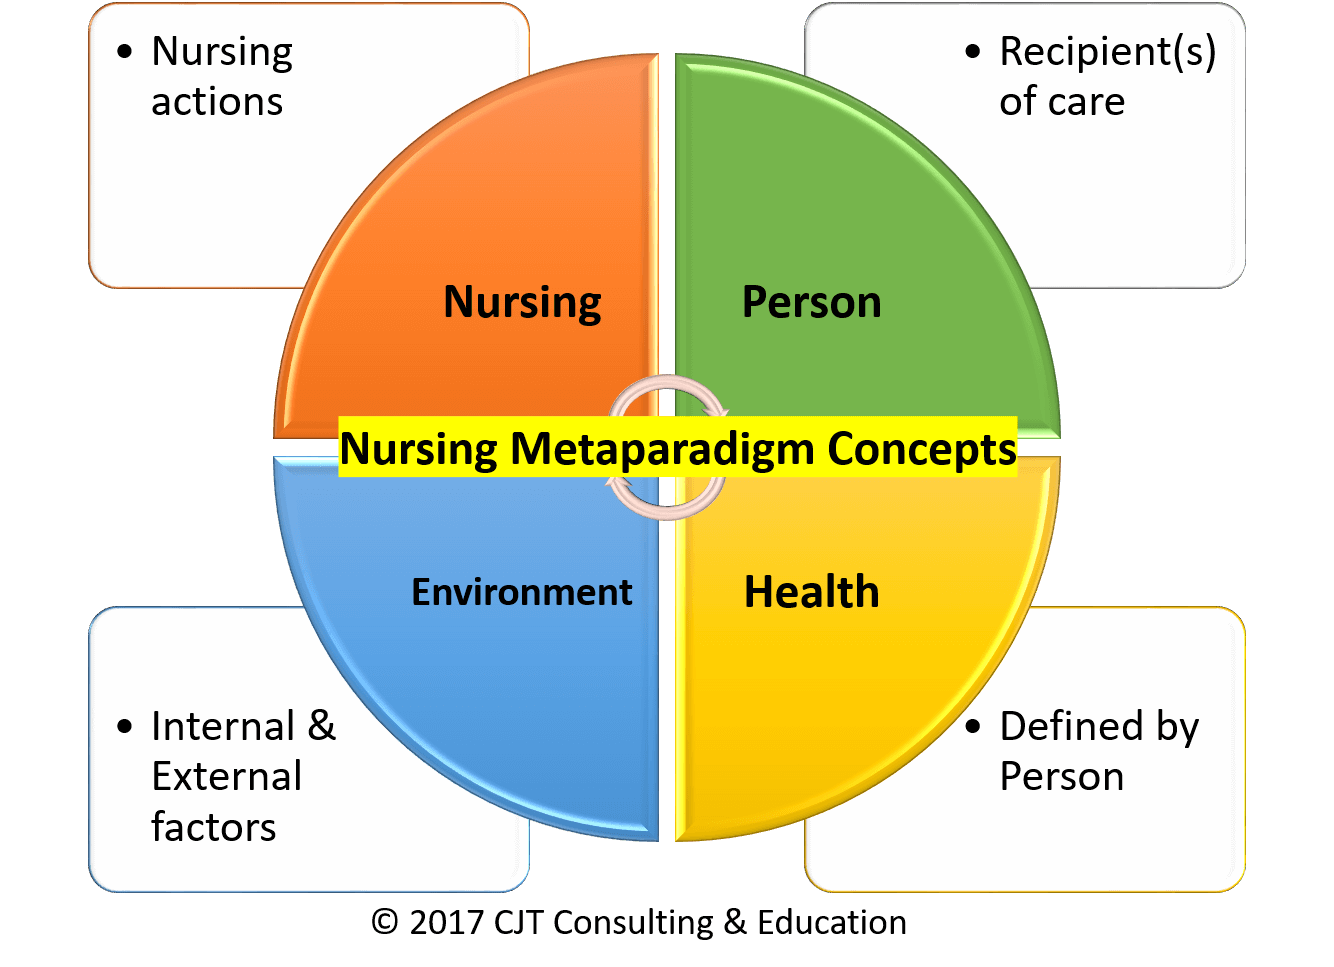 What Is The Nursing Metaparadigm